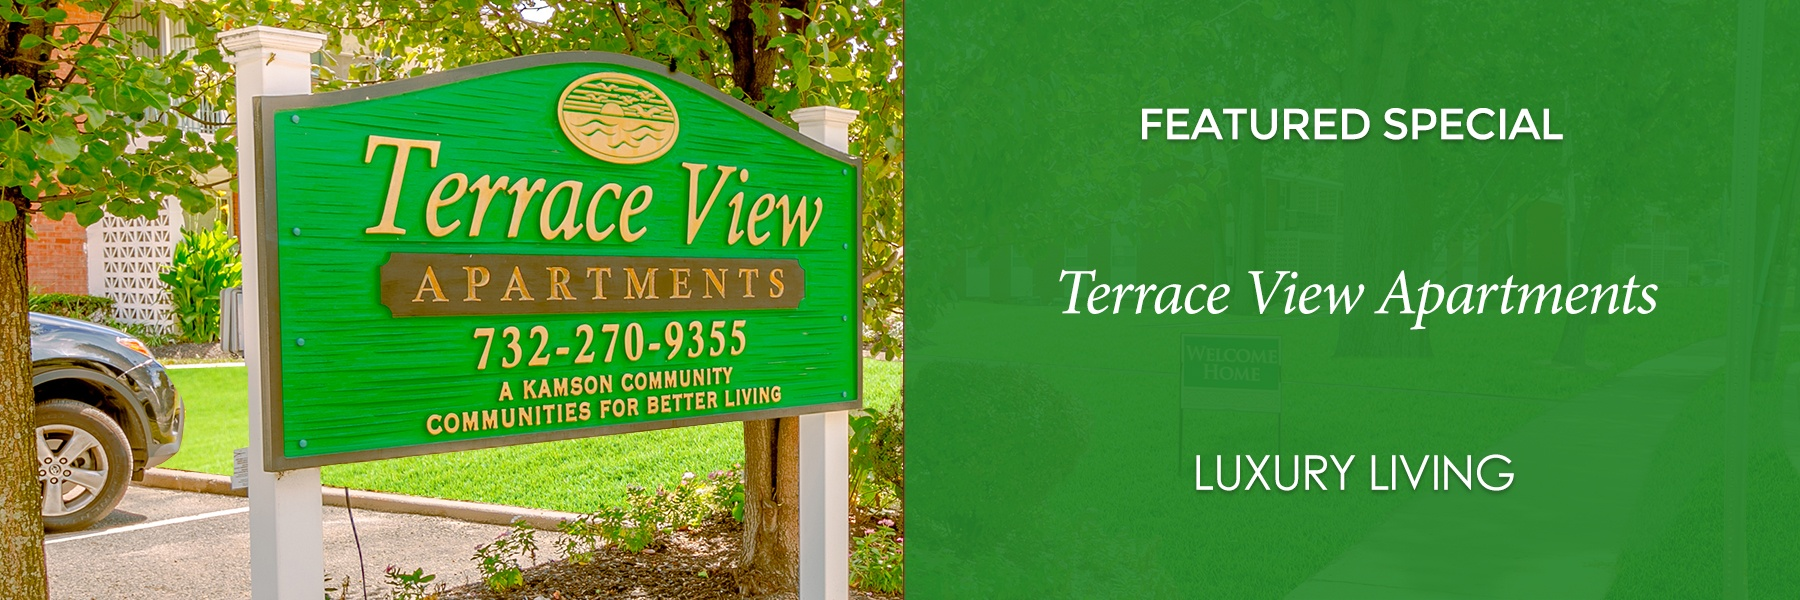 Terrace View Apartments For Rent in Toms River, NJ Specials